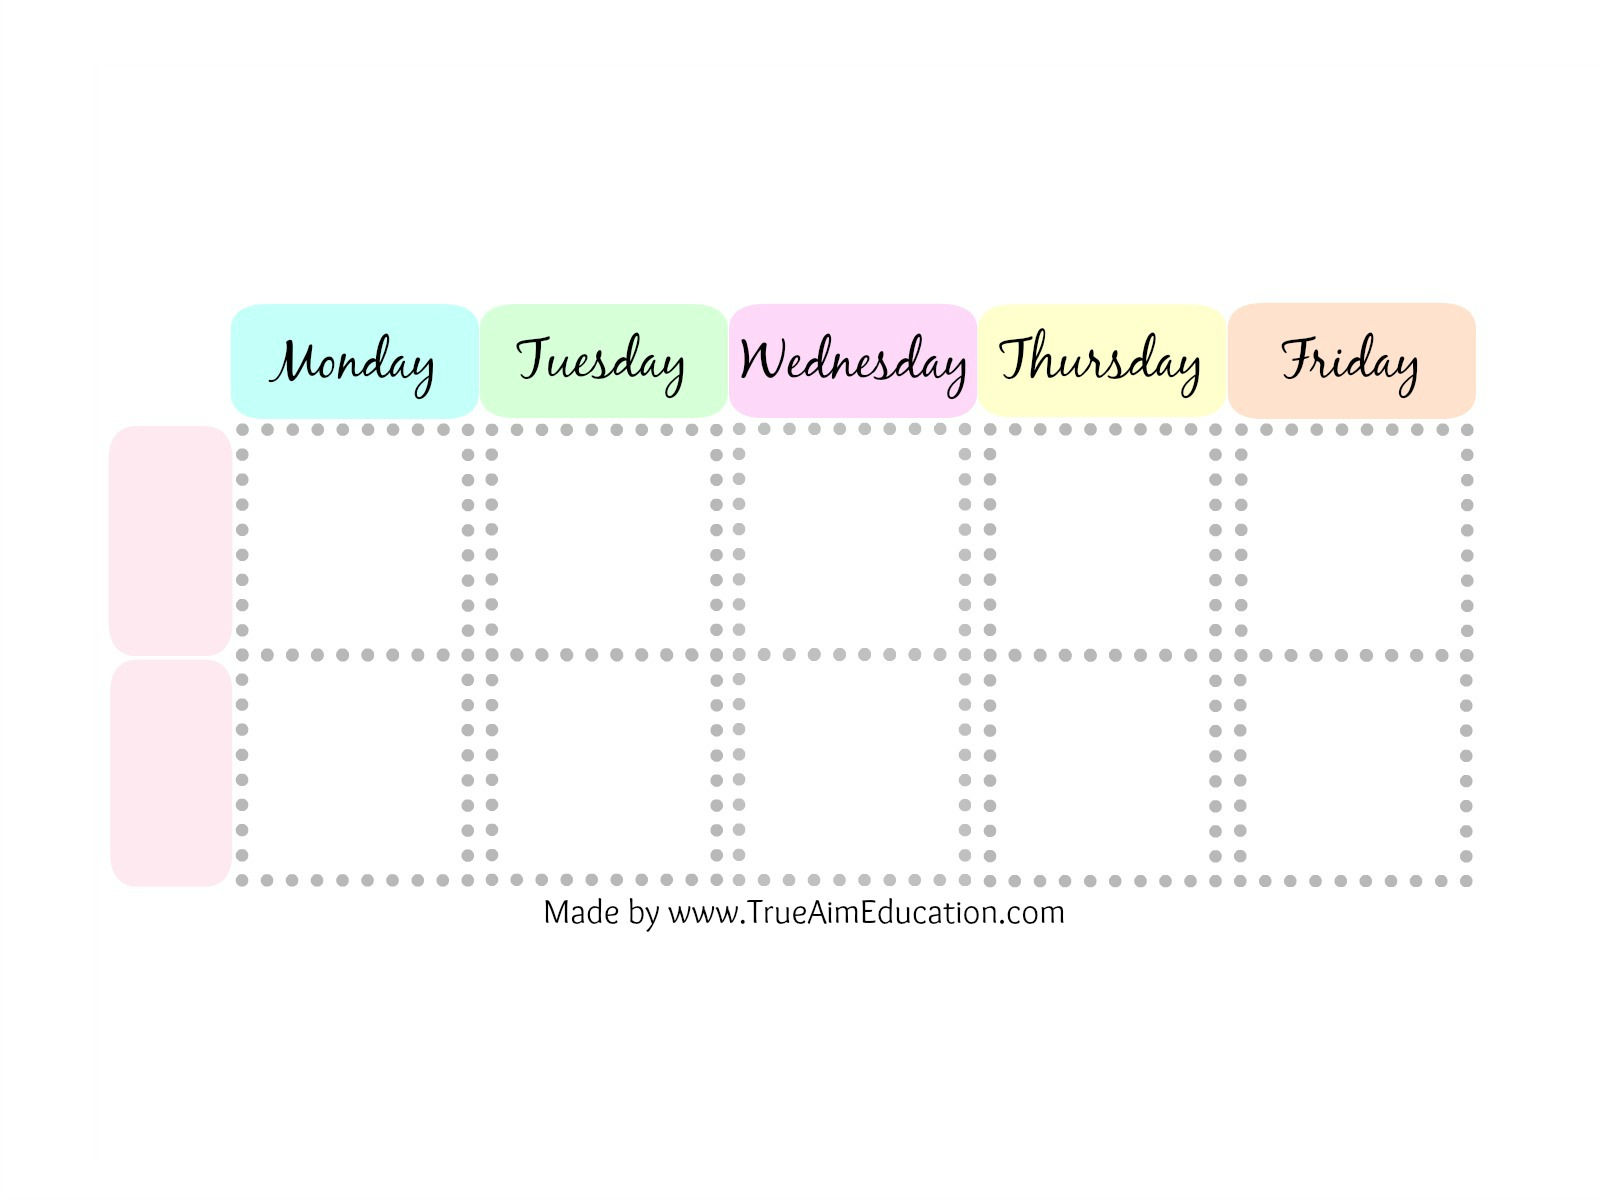 image about Free Weekly Planner Printables titled Free of charge Weekly Planner Printable Accurate Emphasis